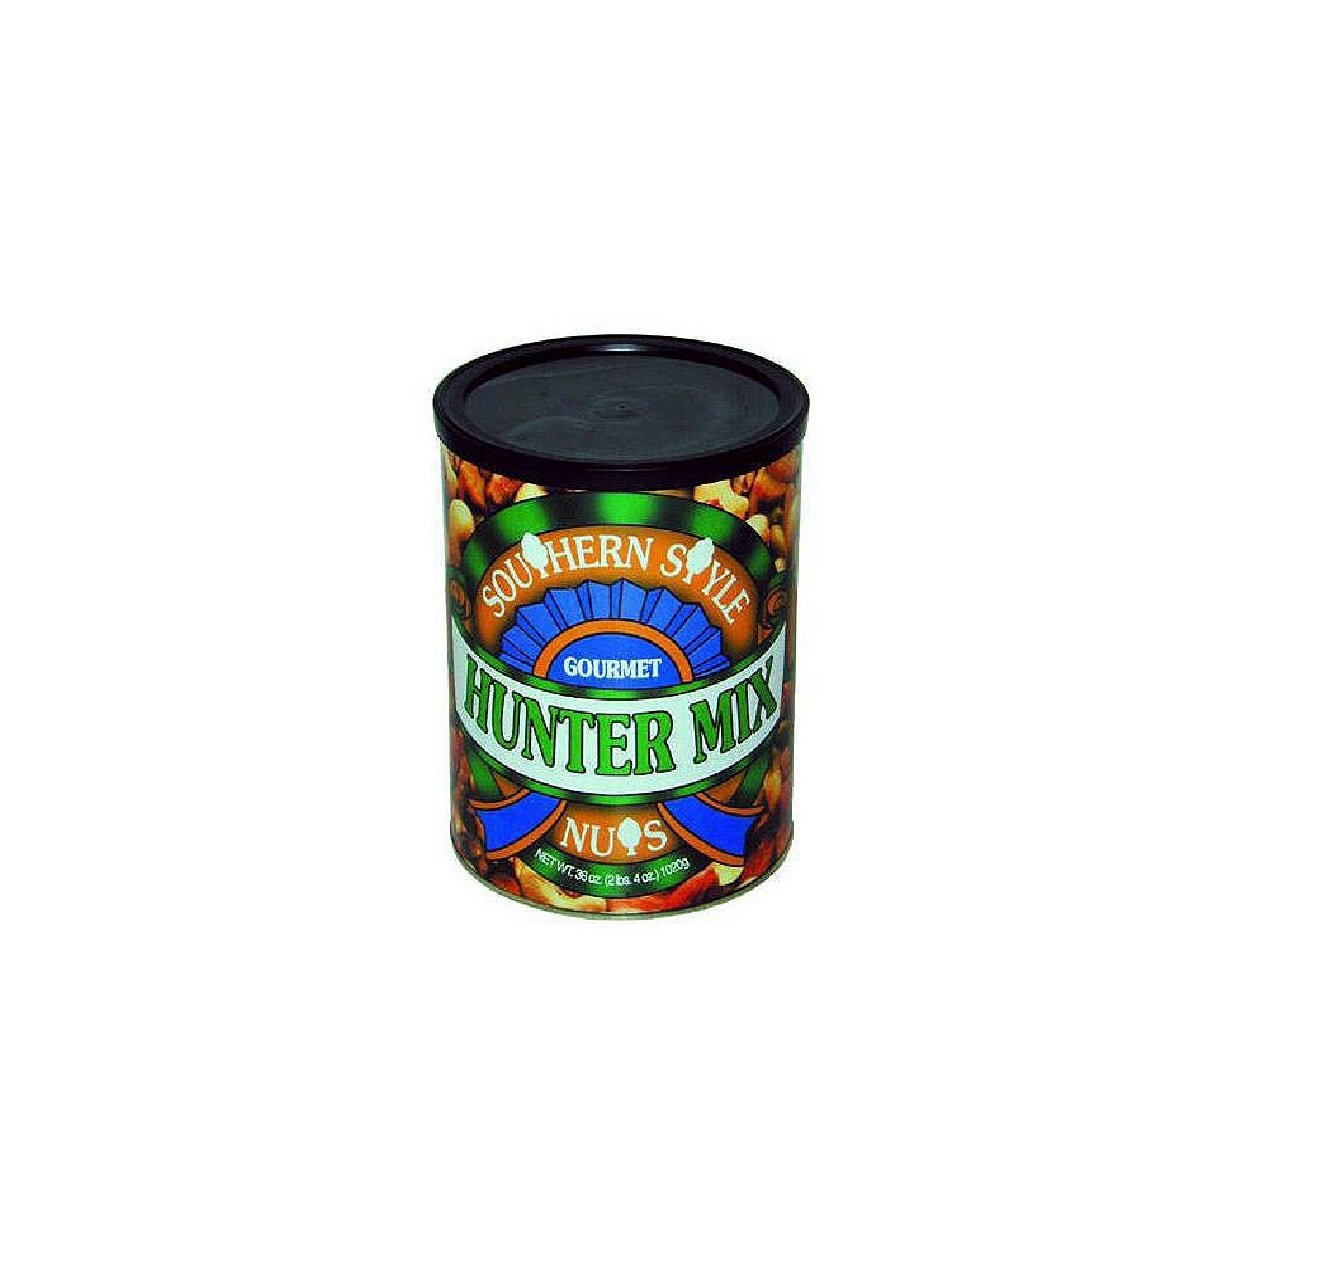 Squirrel Brand Southern Style Nuts-Gourmet Hunter Mix, 36-Ounce (Pack of 3)